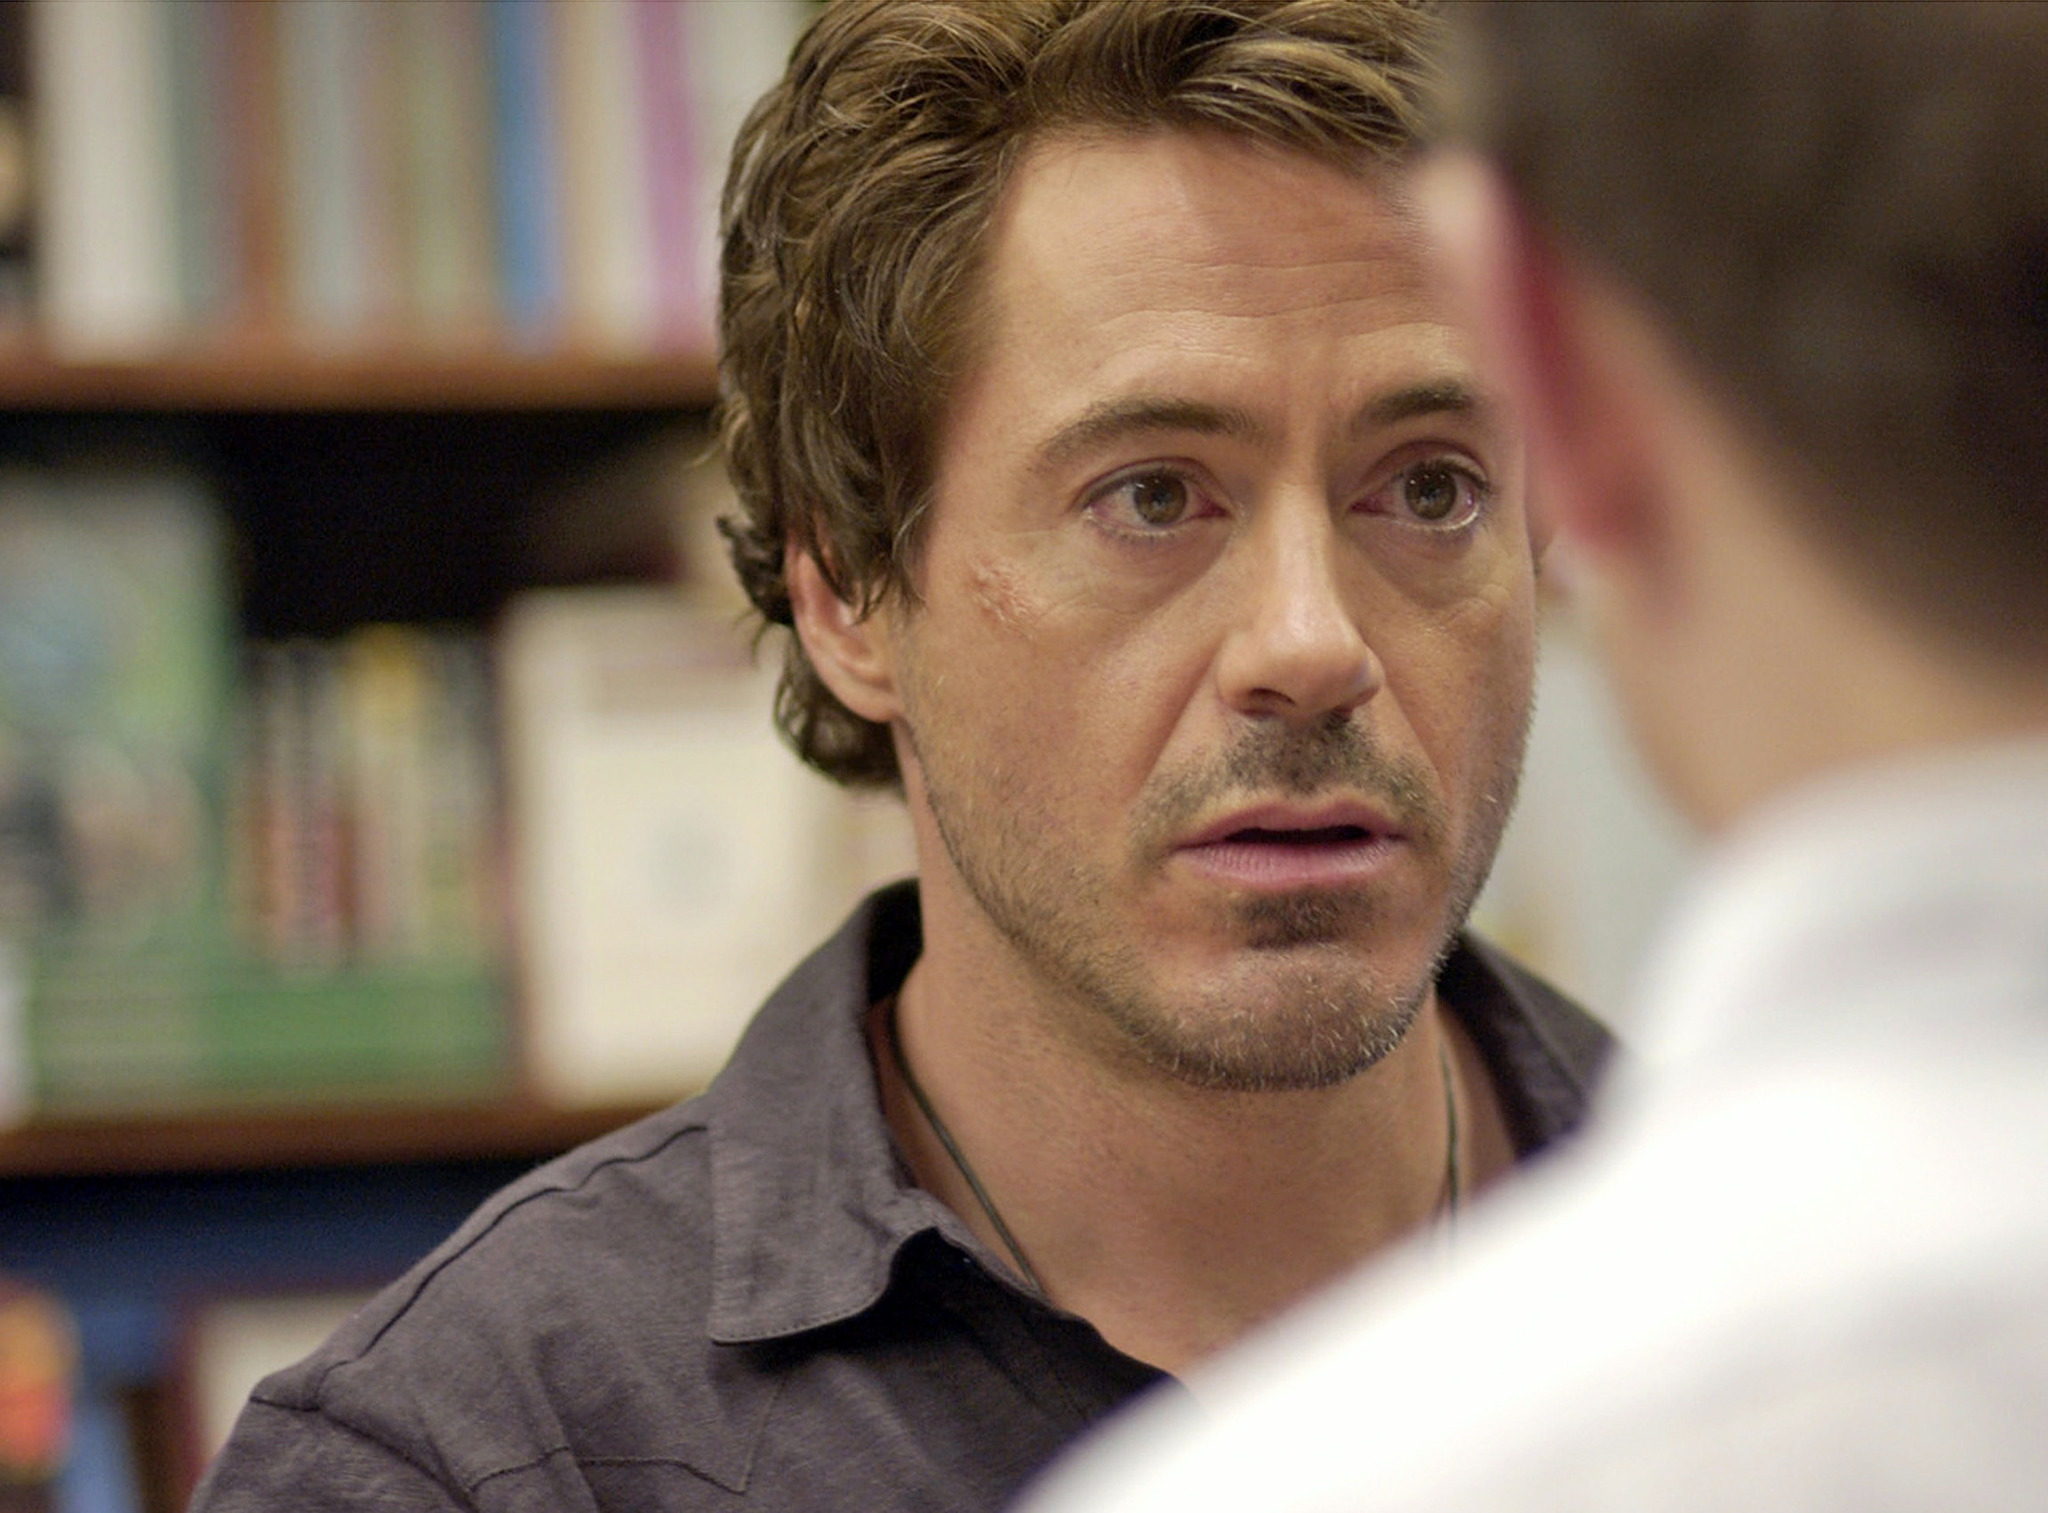 Robert Downey Jr. in A Guide to Recognizing Your Saints (2006)